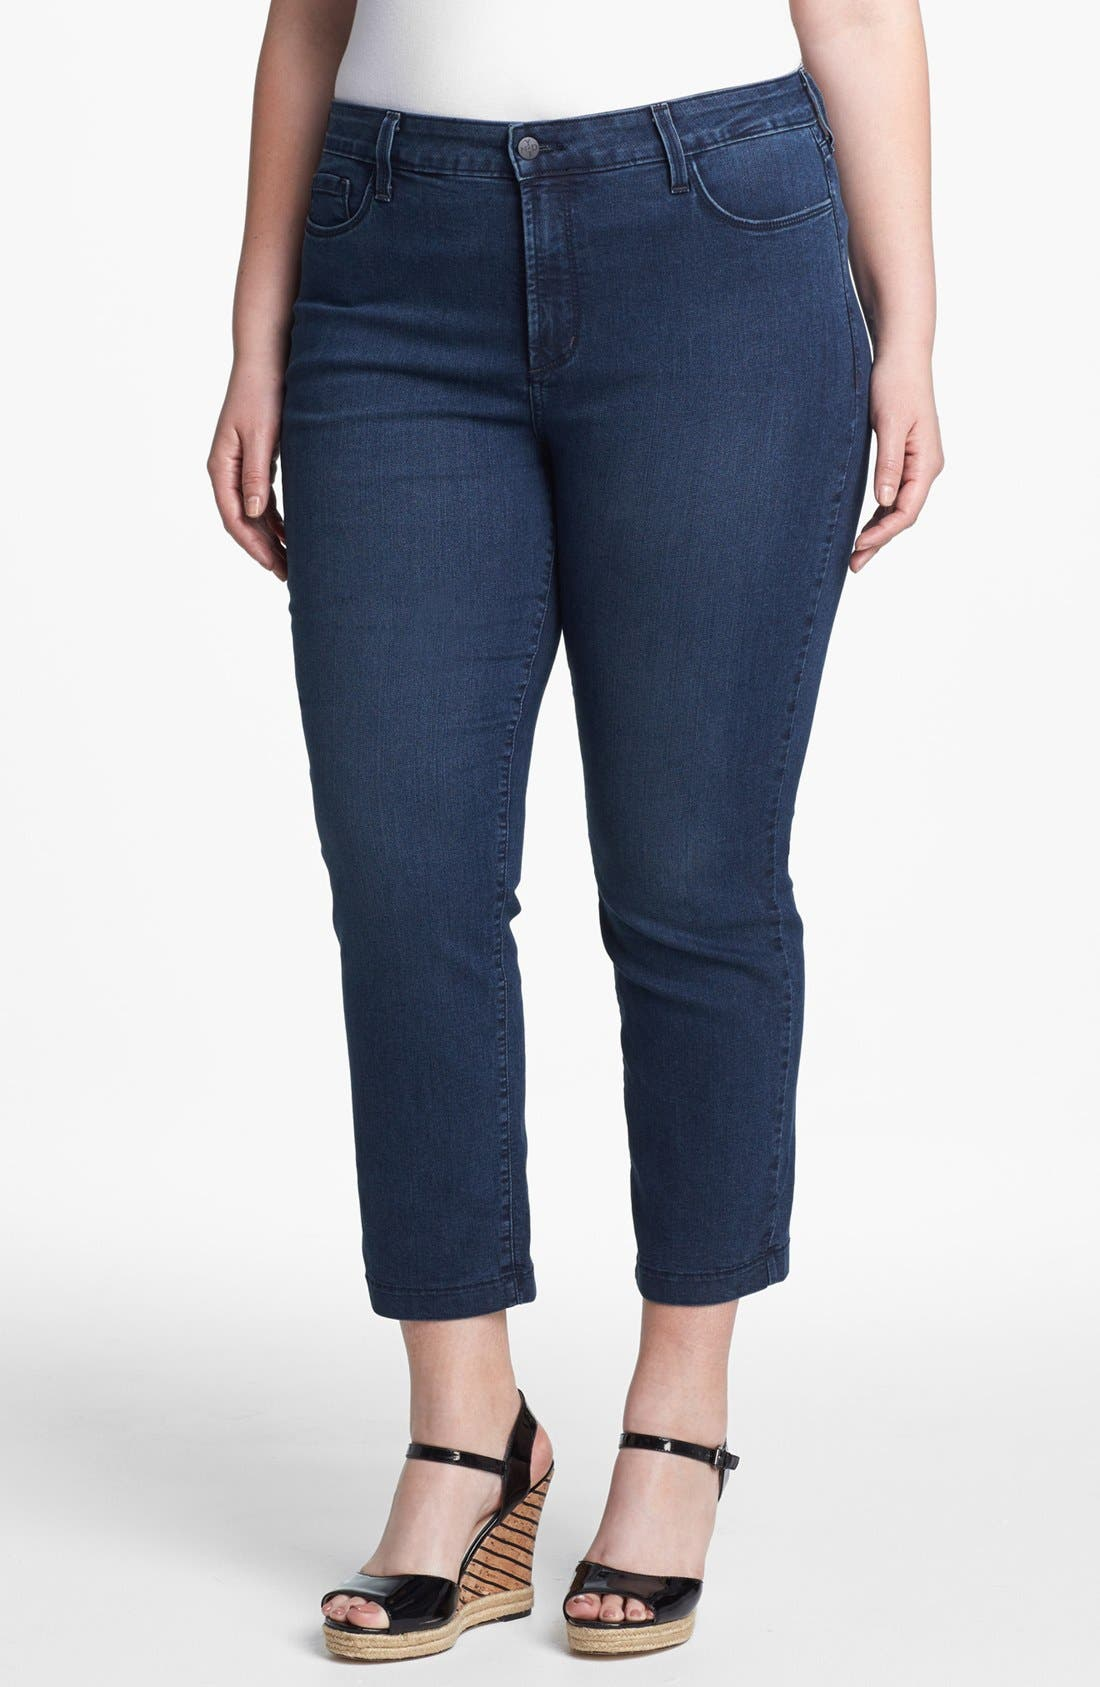 Alternate Image 1 Selected - NYDJ 'Audrey' Stretch Ankle Skinny Jeans (New York) (Plus Size)